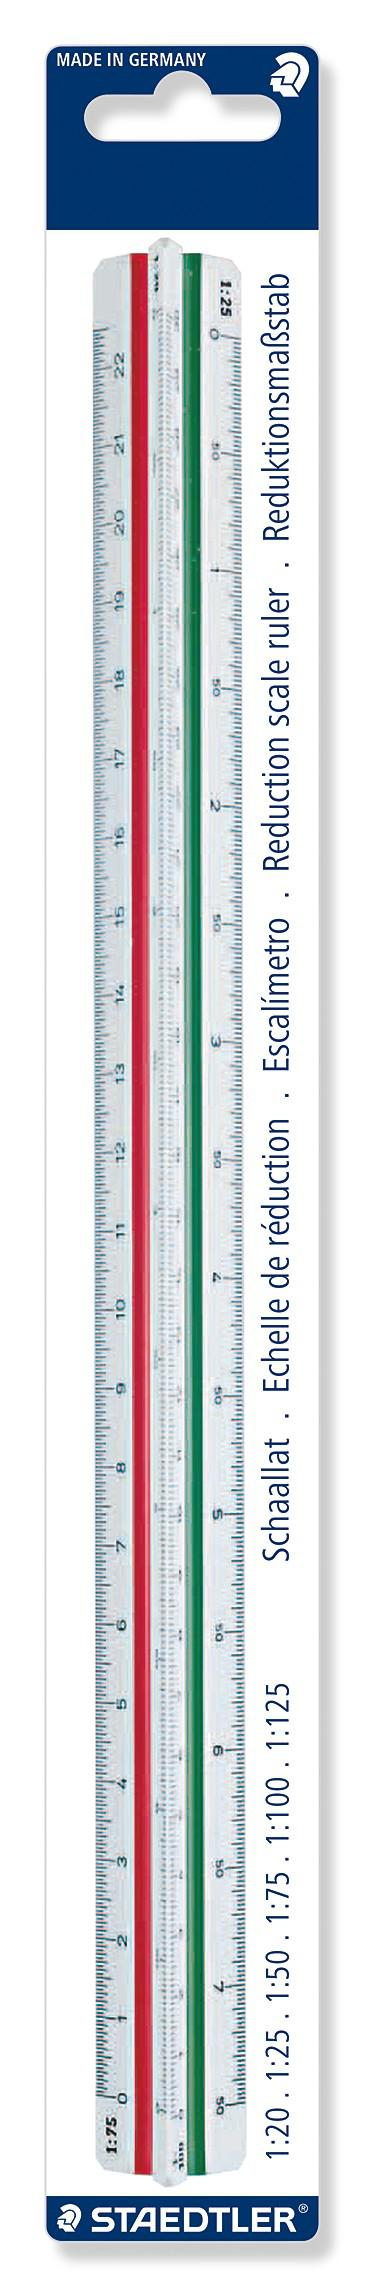 Staedtler 1 Triangular Scale Ruler